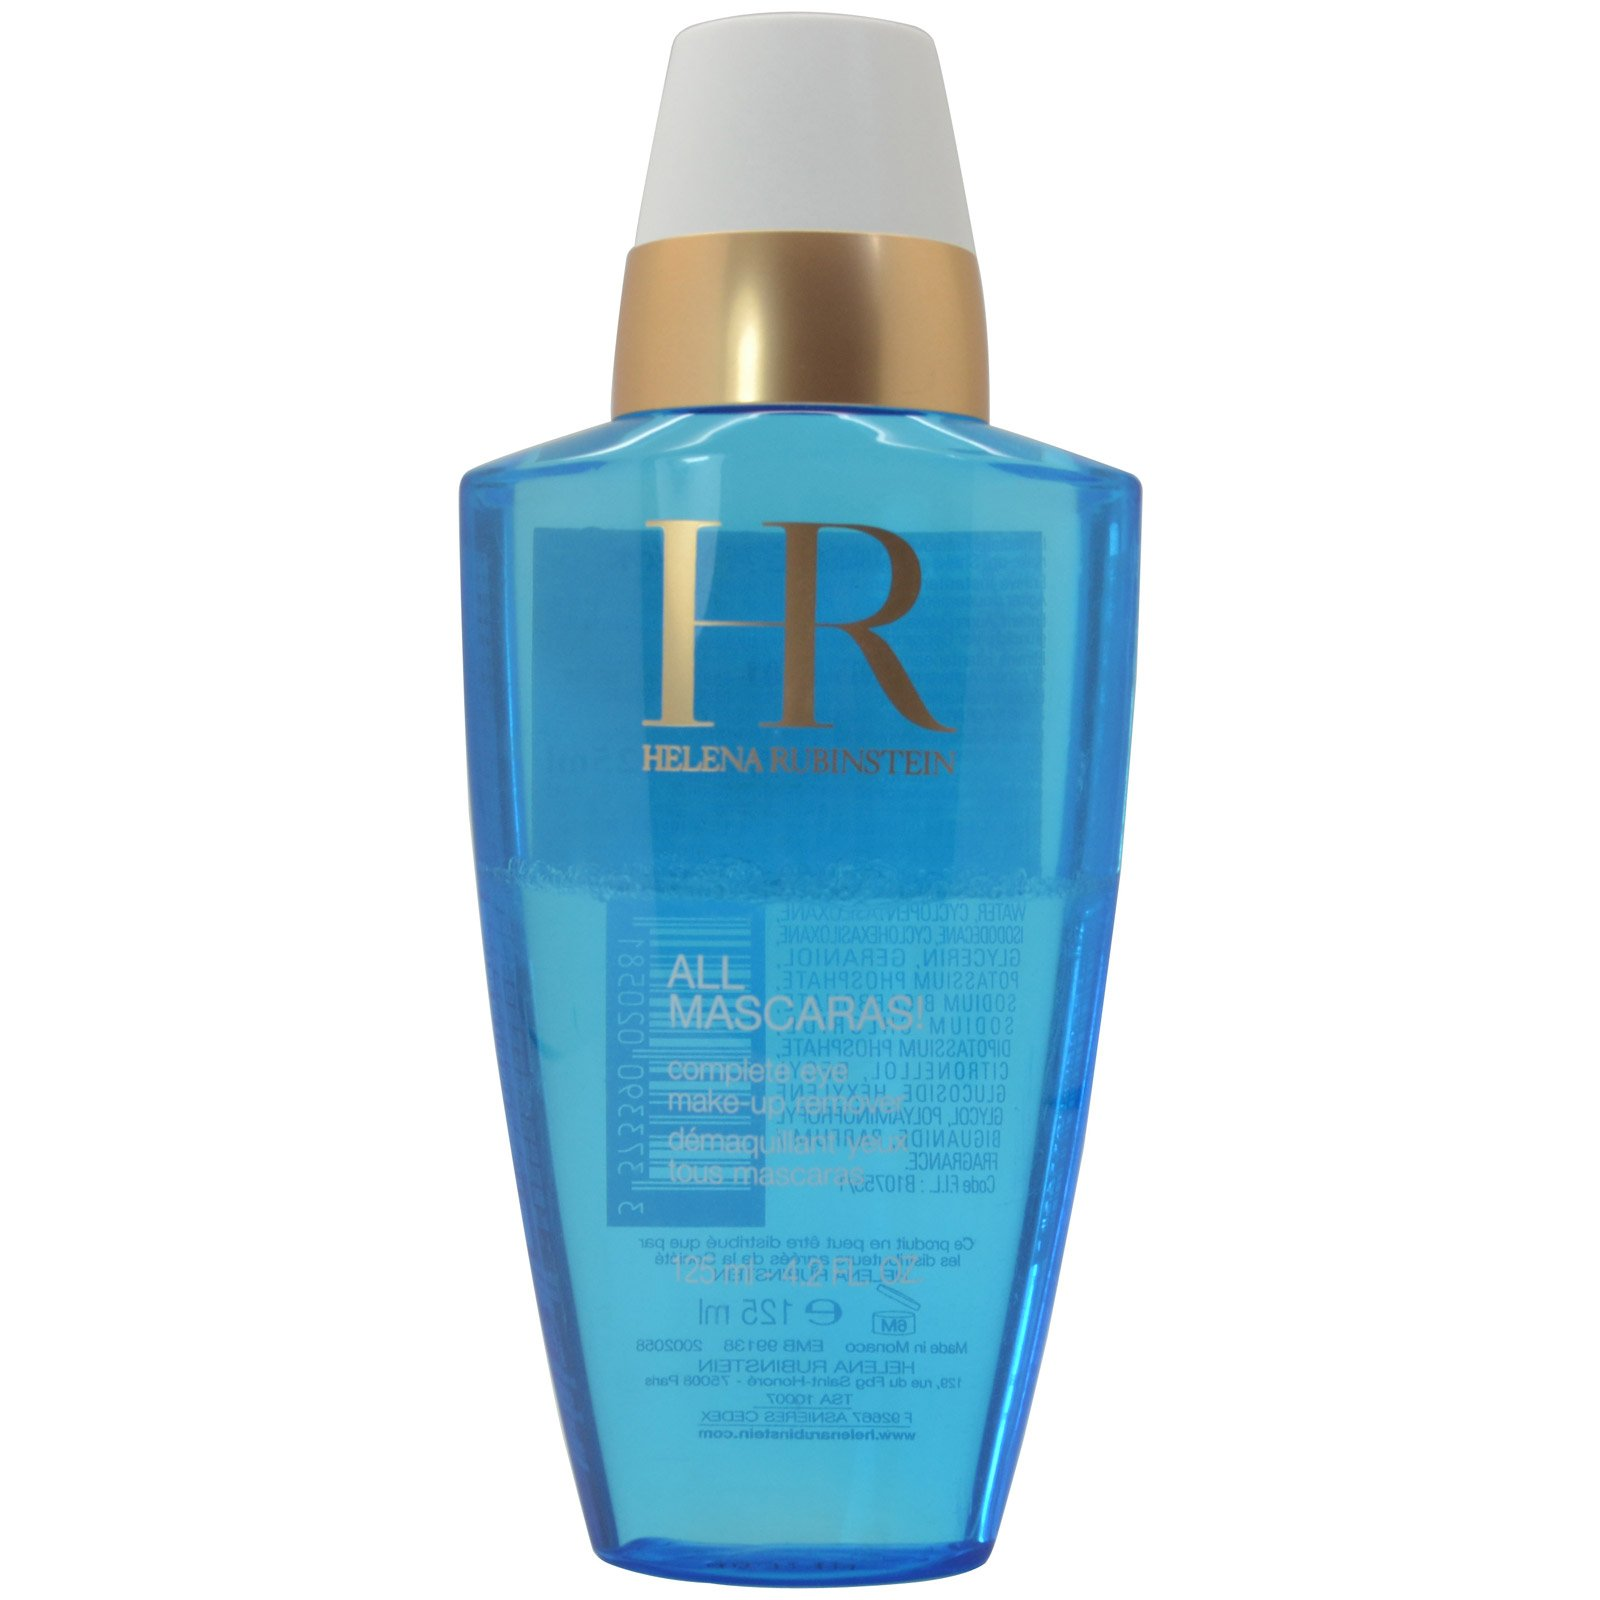 Helena Rubinstein All Mascaras! Makeup Remover for Women, 4.2 Ounce by Helena Rubinstein